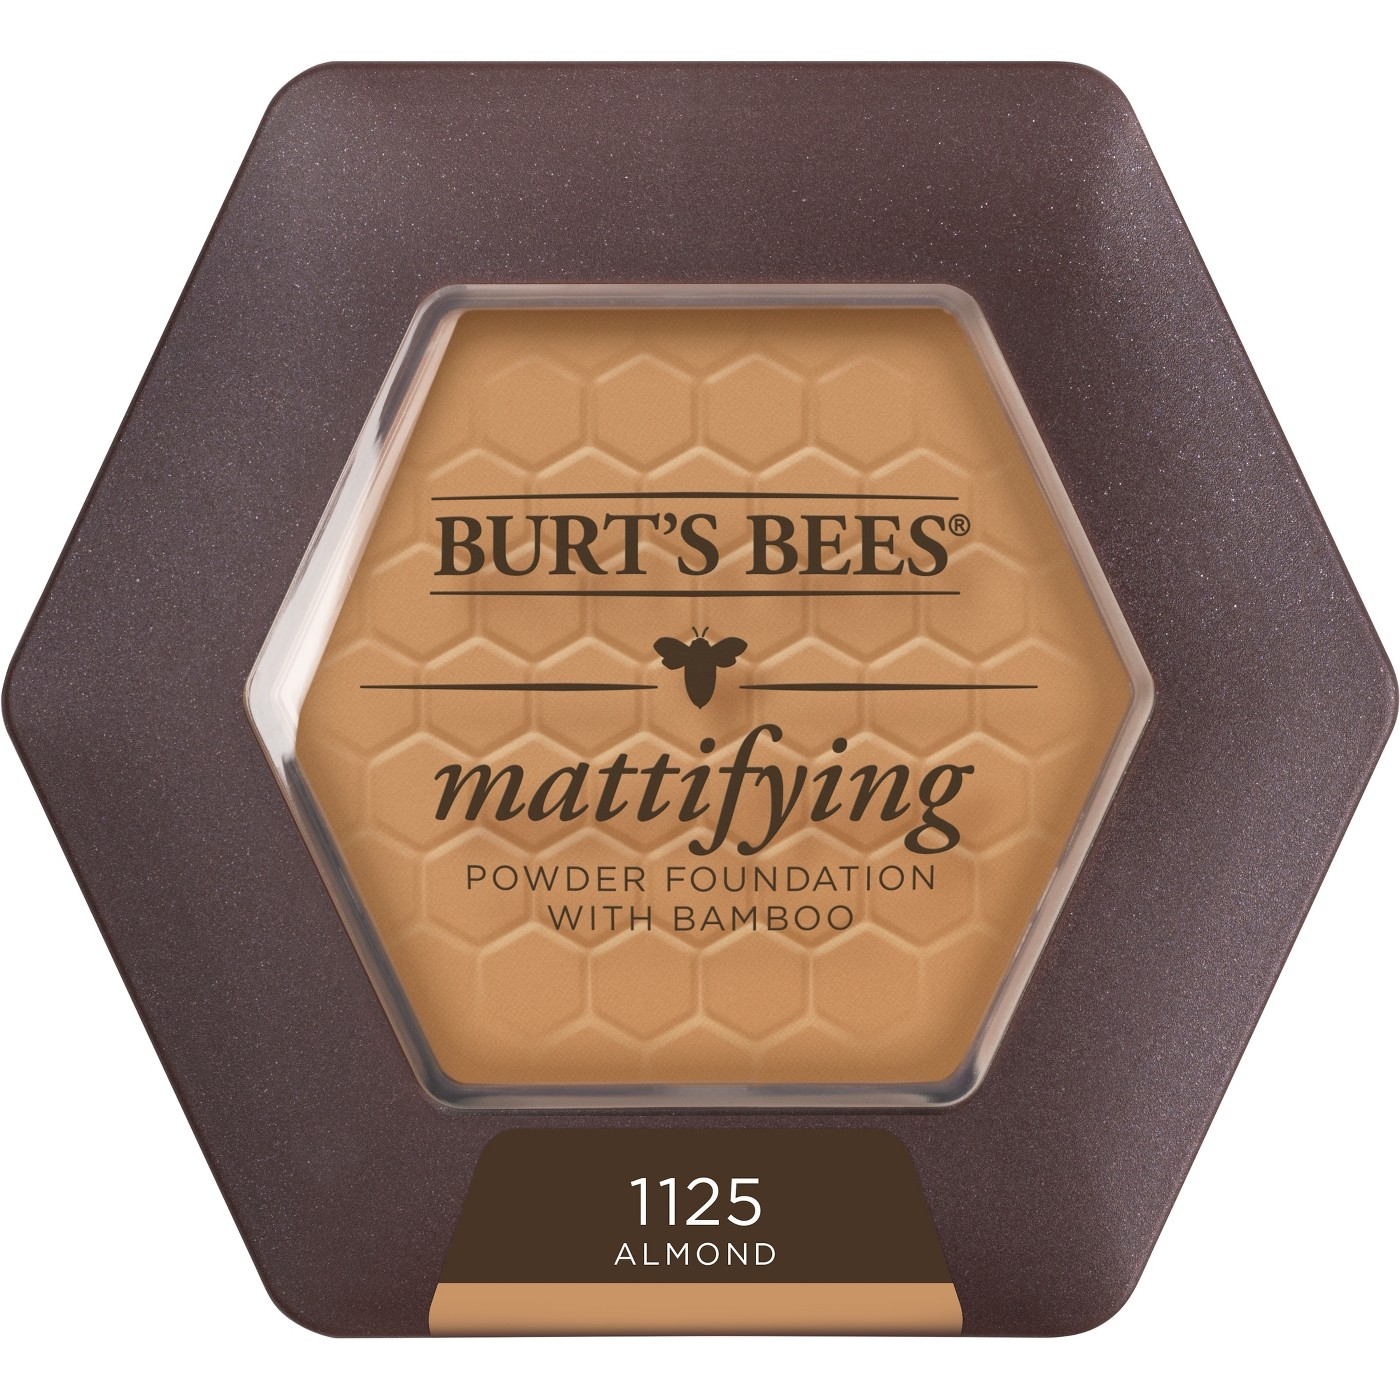 Natural Mattifying Powder Foundation $15.89 - I am always looking for more natural makeup. I have bought this foundation a few times now and I'm never going back- gives great high quality coverage without looking caked in makeup.Click here to shop